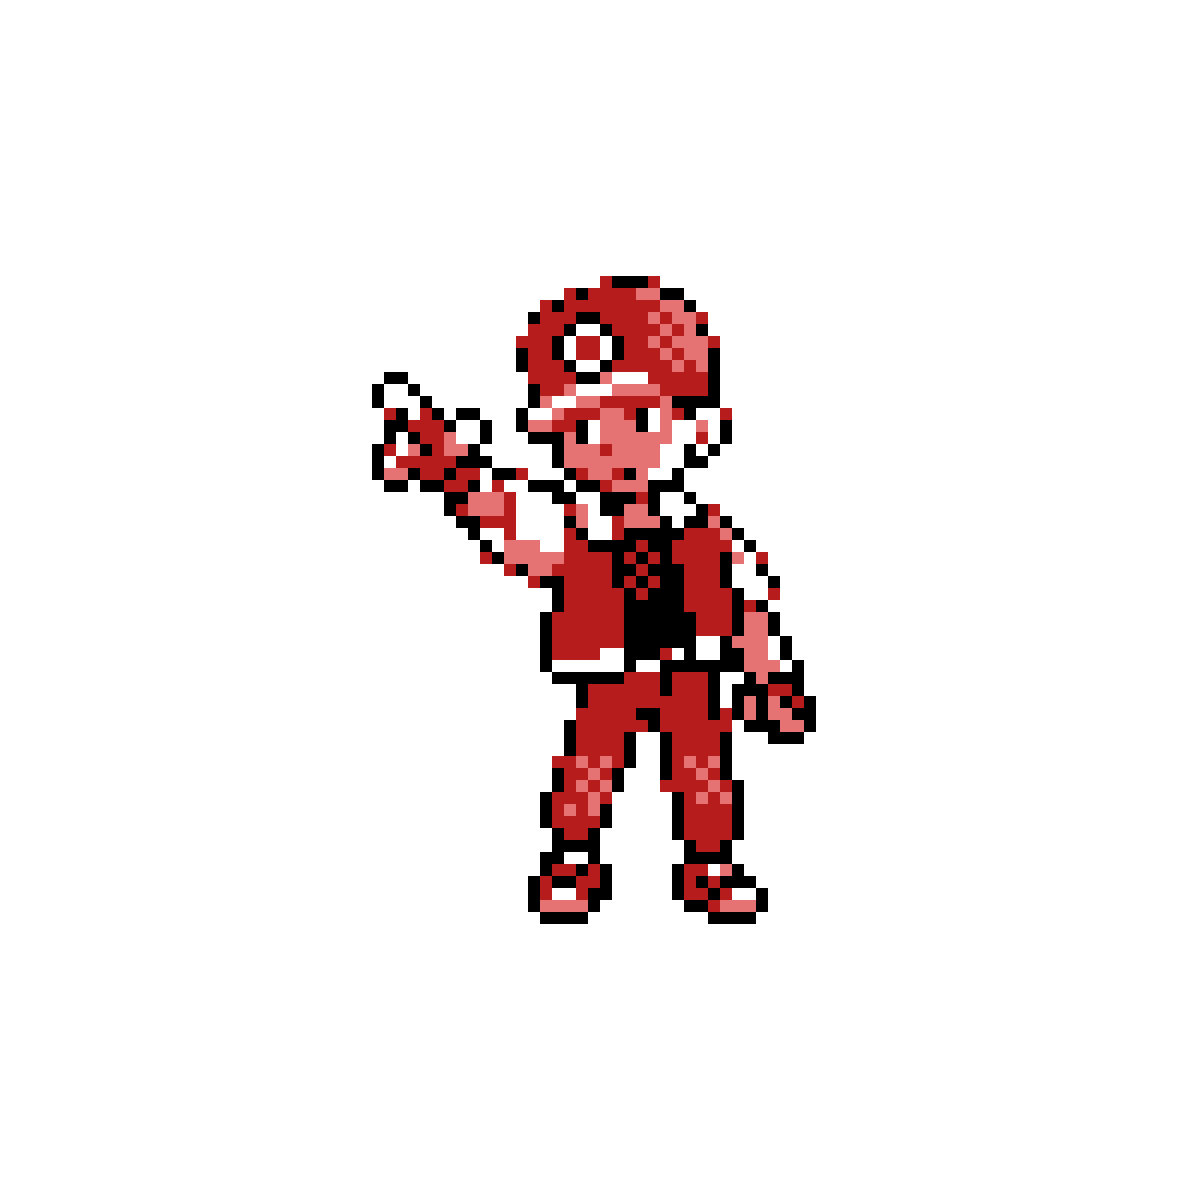 Pokemon red sprite png. Pixilart green gold and